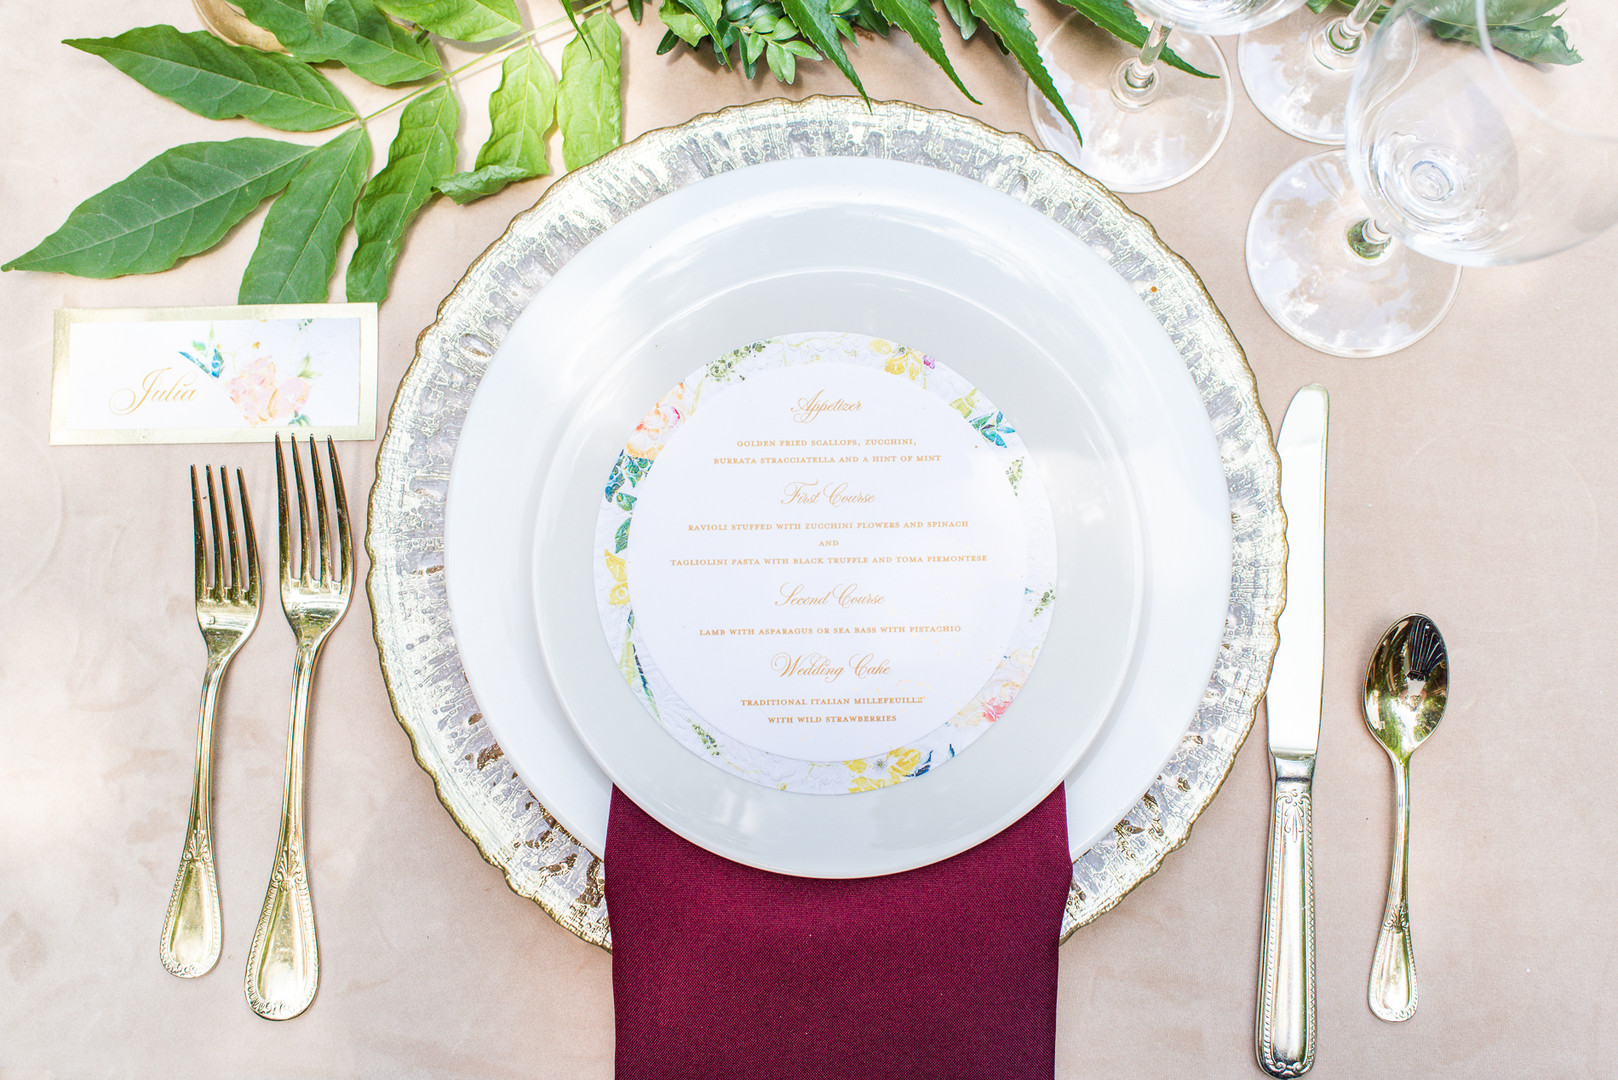 wedding place setting with a red napkin and printed circular dish menu